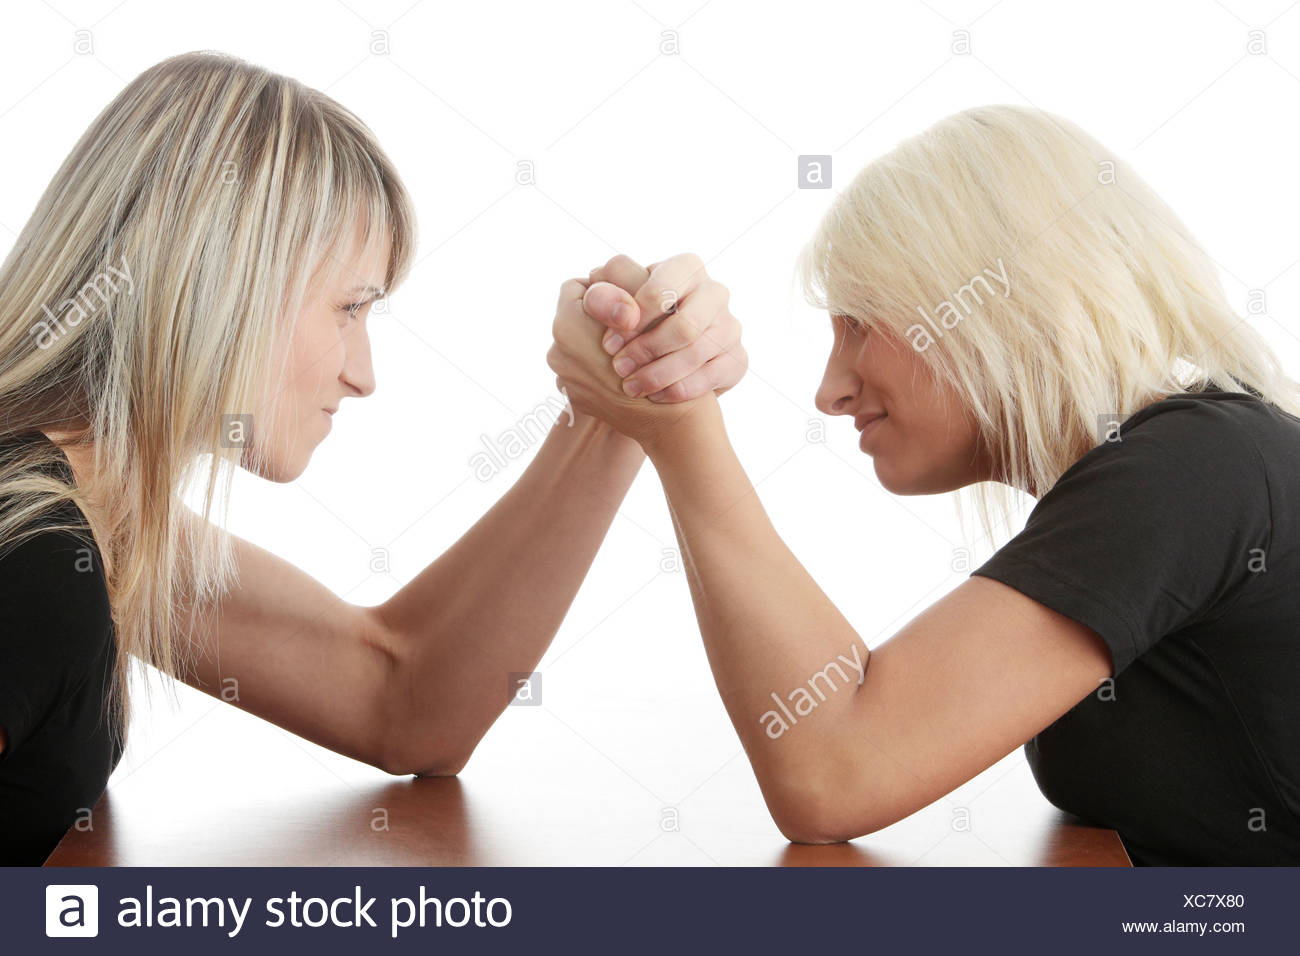 Two woman competition. Isolated on white background - Stock Image